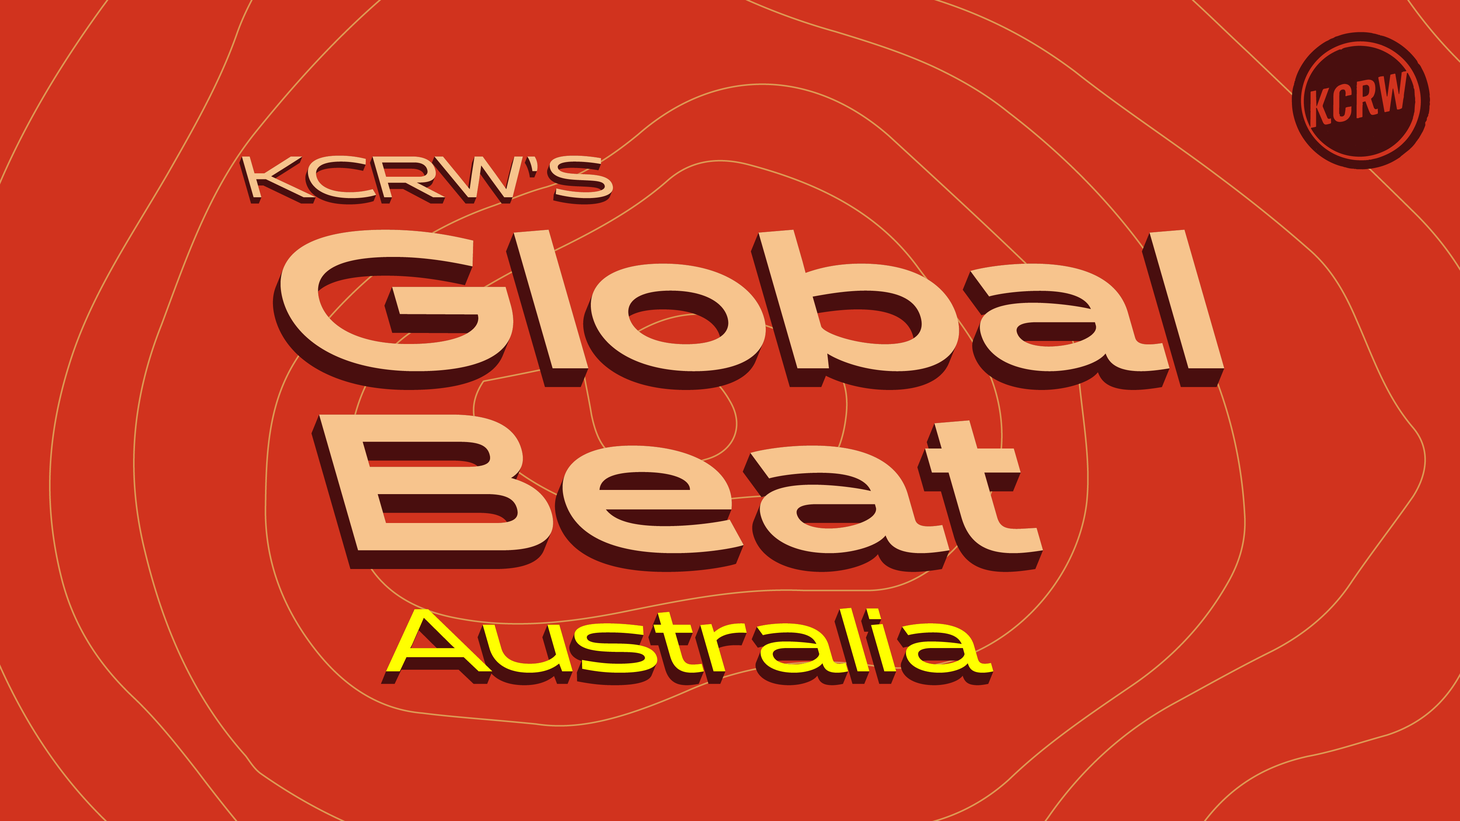 Welcome to KCRW's Global Beat, a new series highlighting artists from around the world.